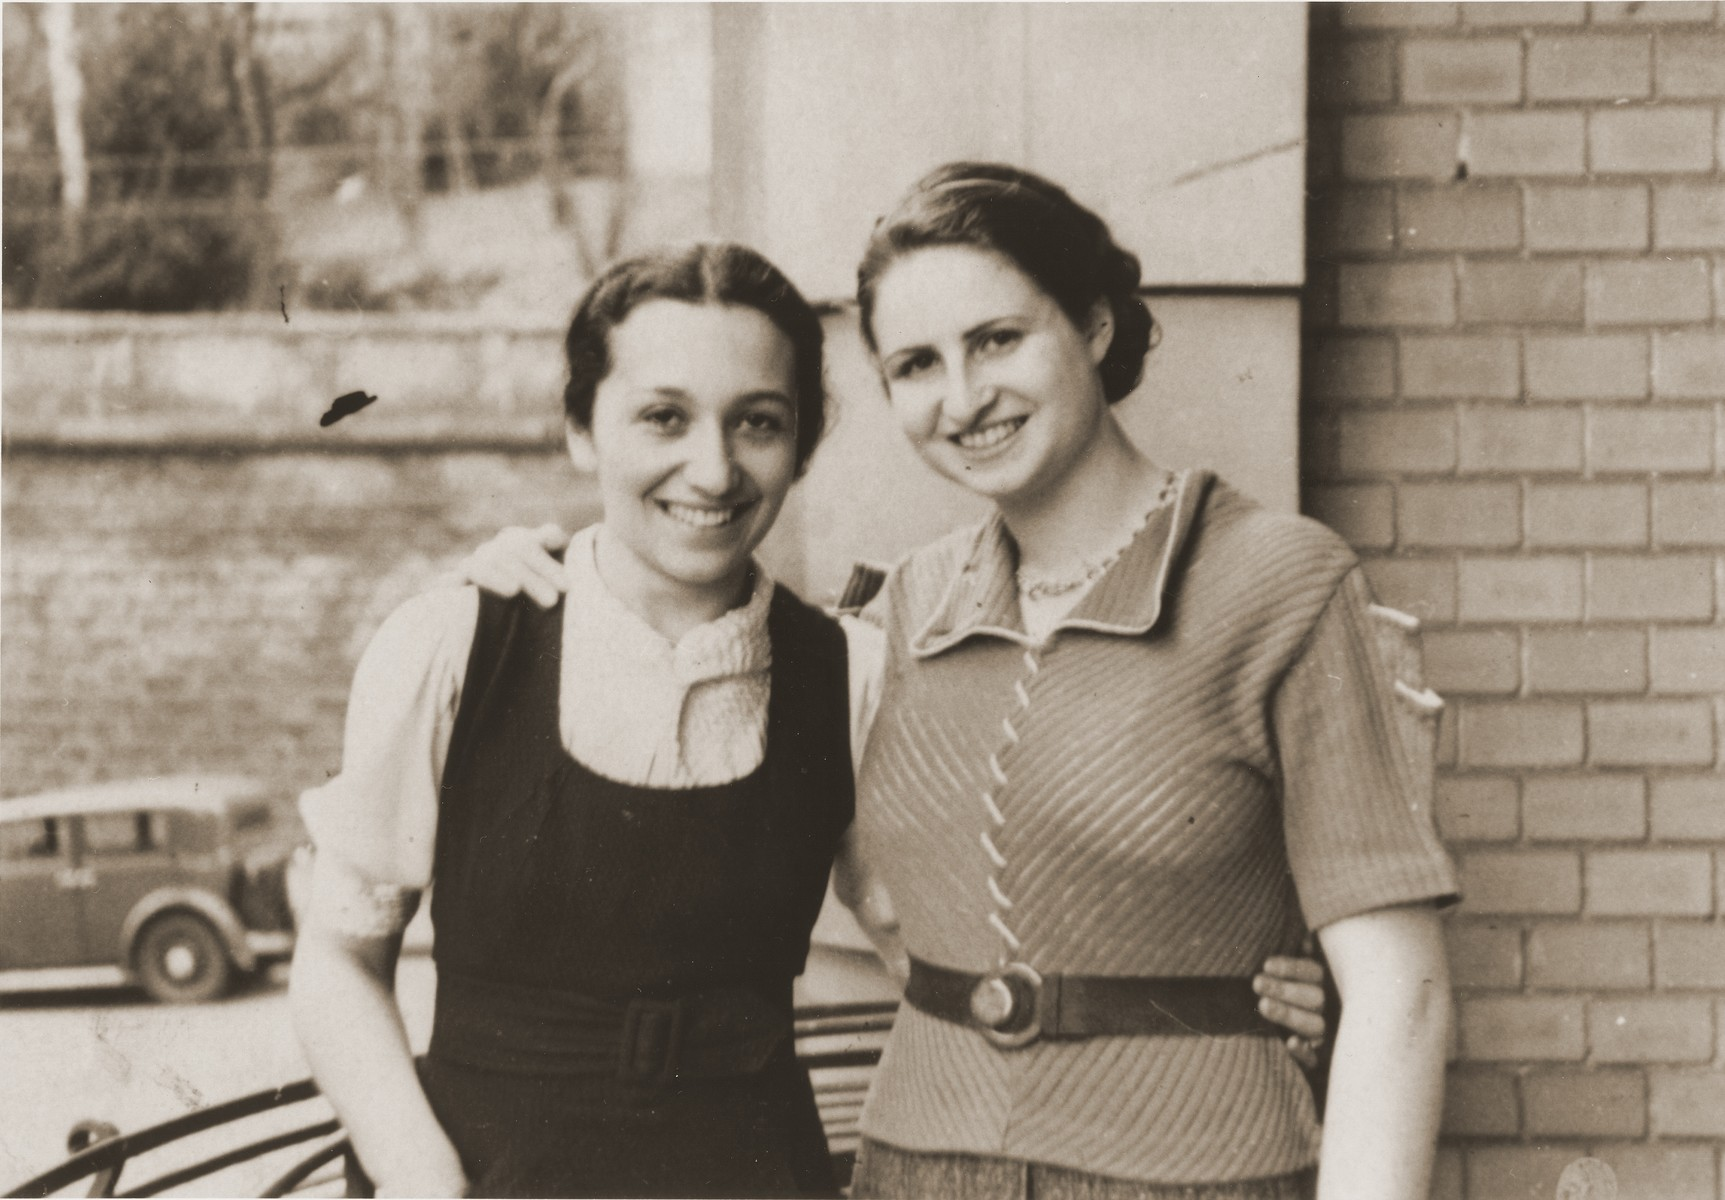 Two young Jewish women pose with their arms around each other in front of a house.